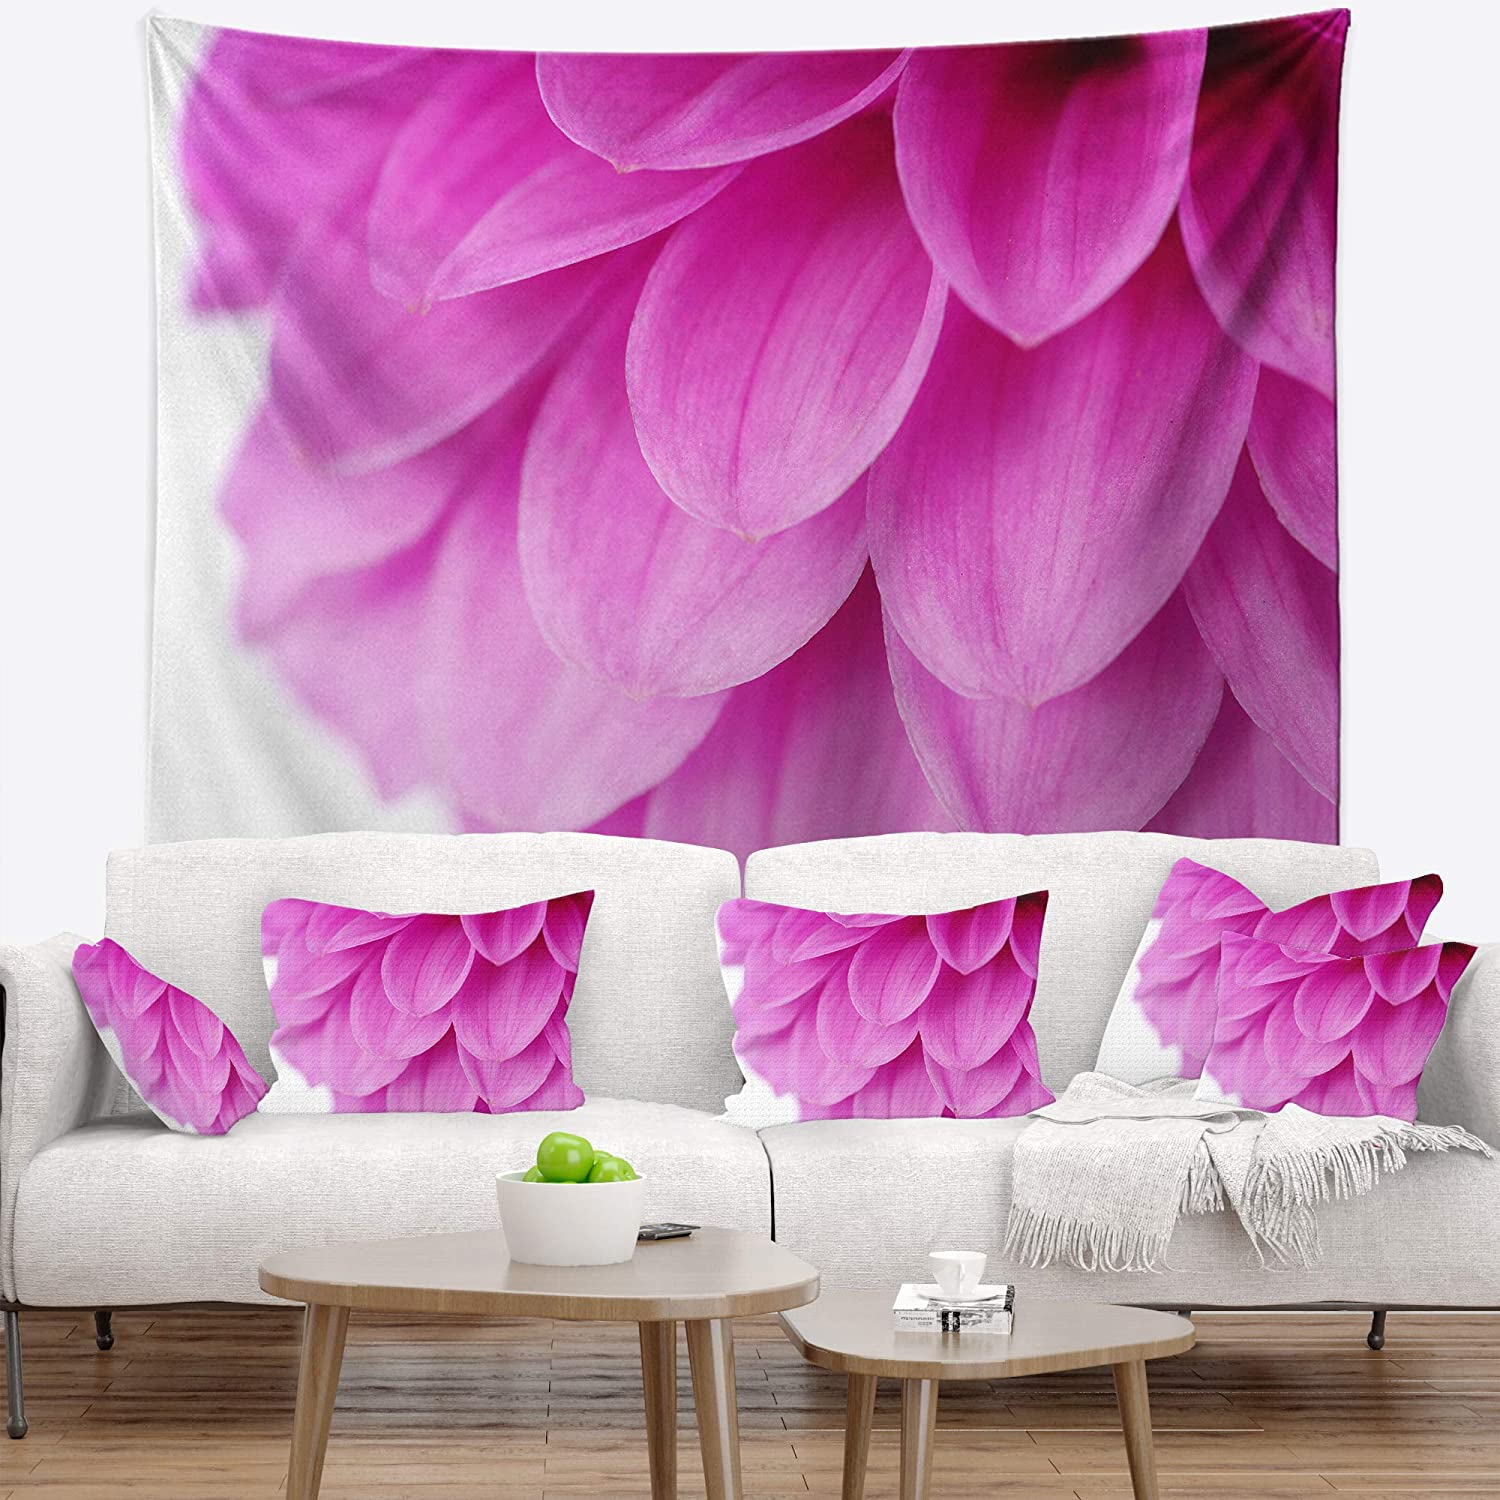 39 x 32 Designart TAP12640-39-32  Soft Purple Abstract Flower Petals Floral Blanket D/écor Art for Home and Office Wall Tapestry Medium